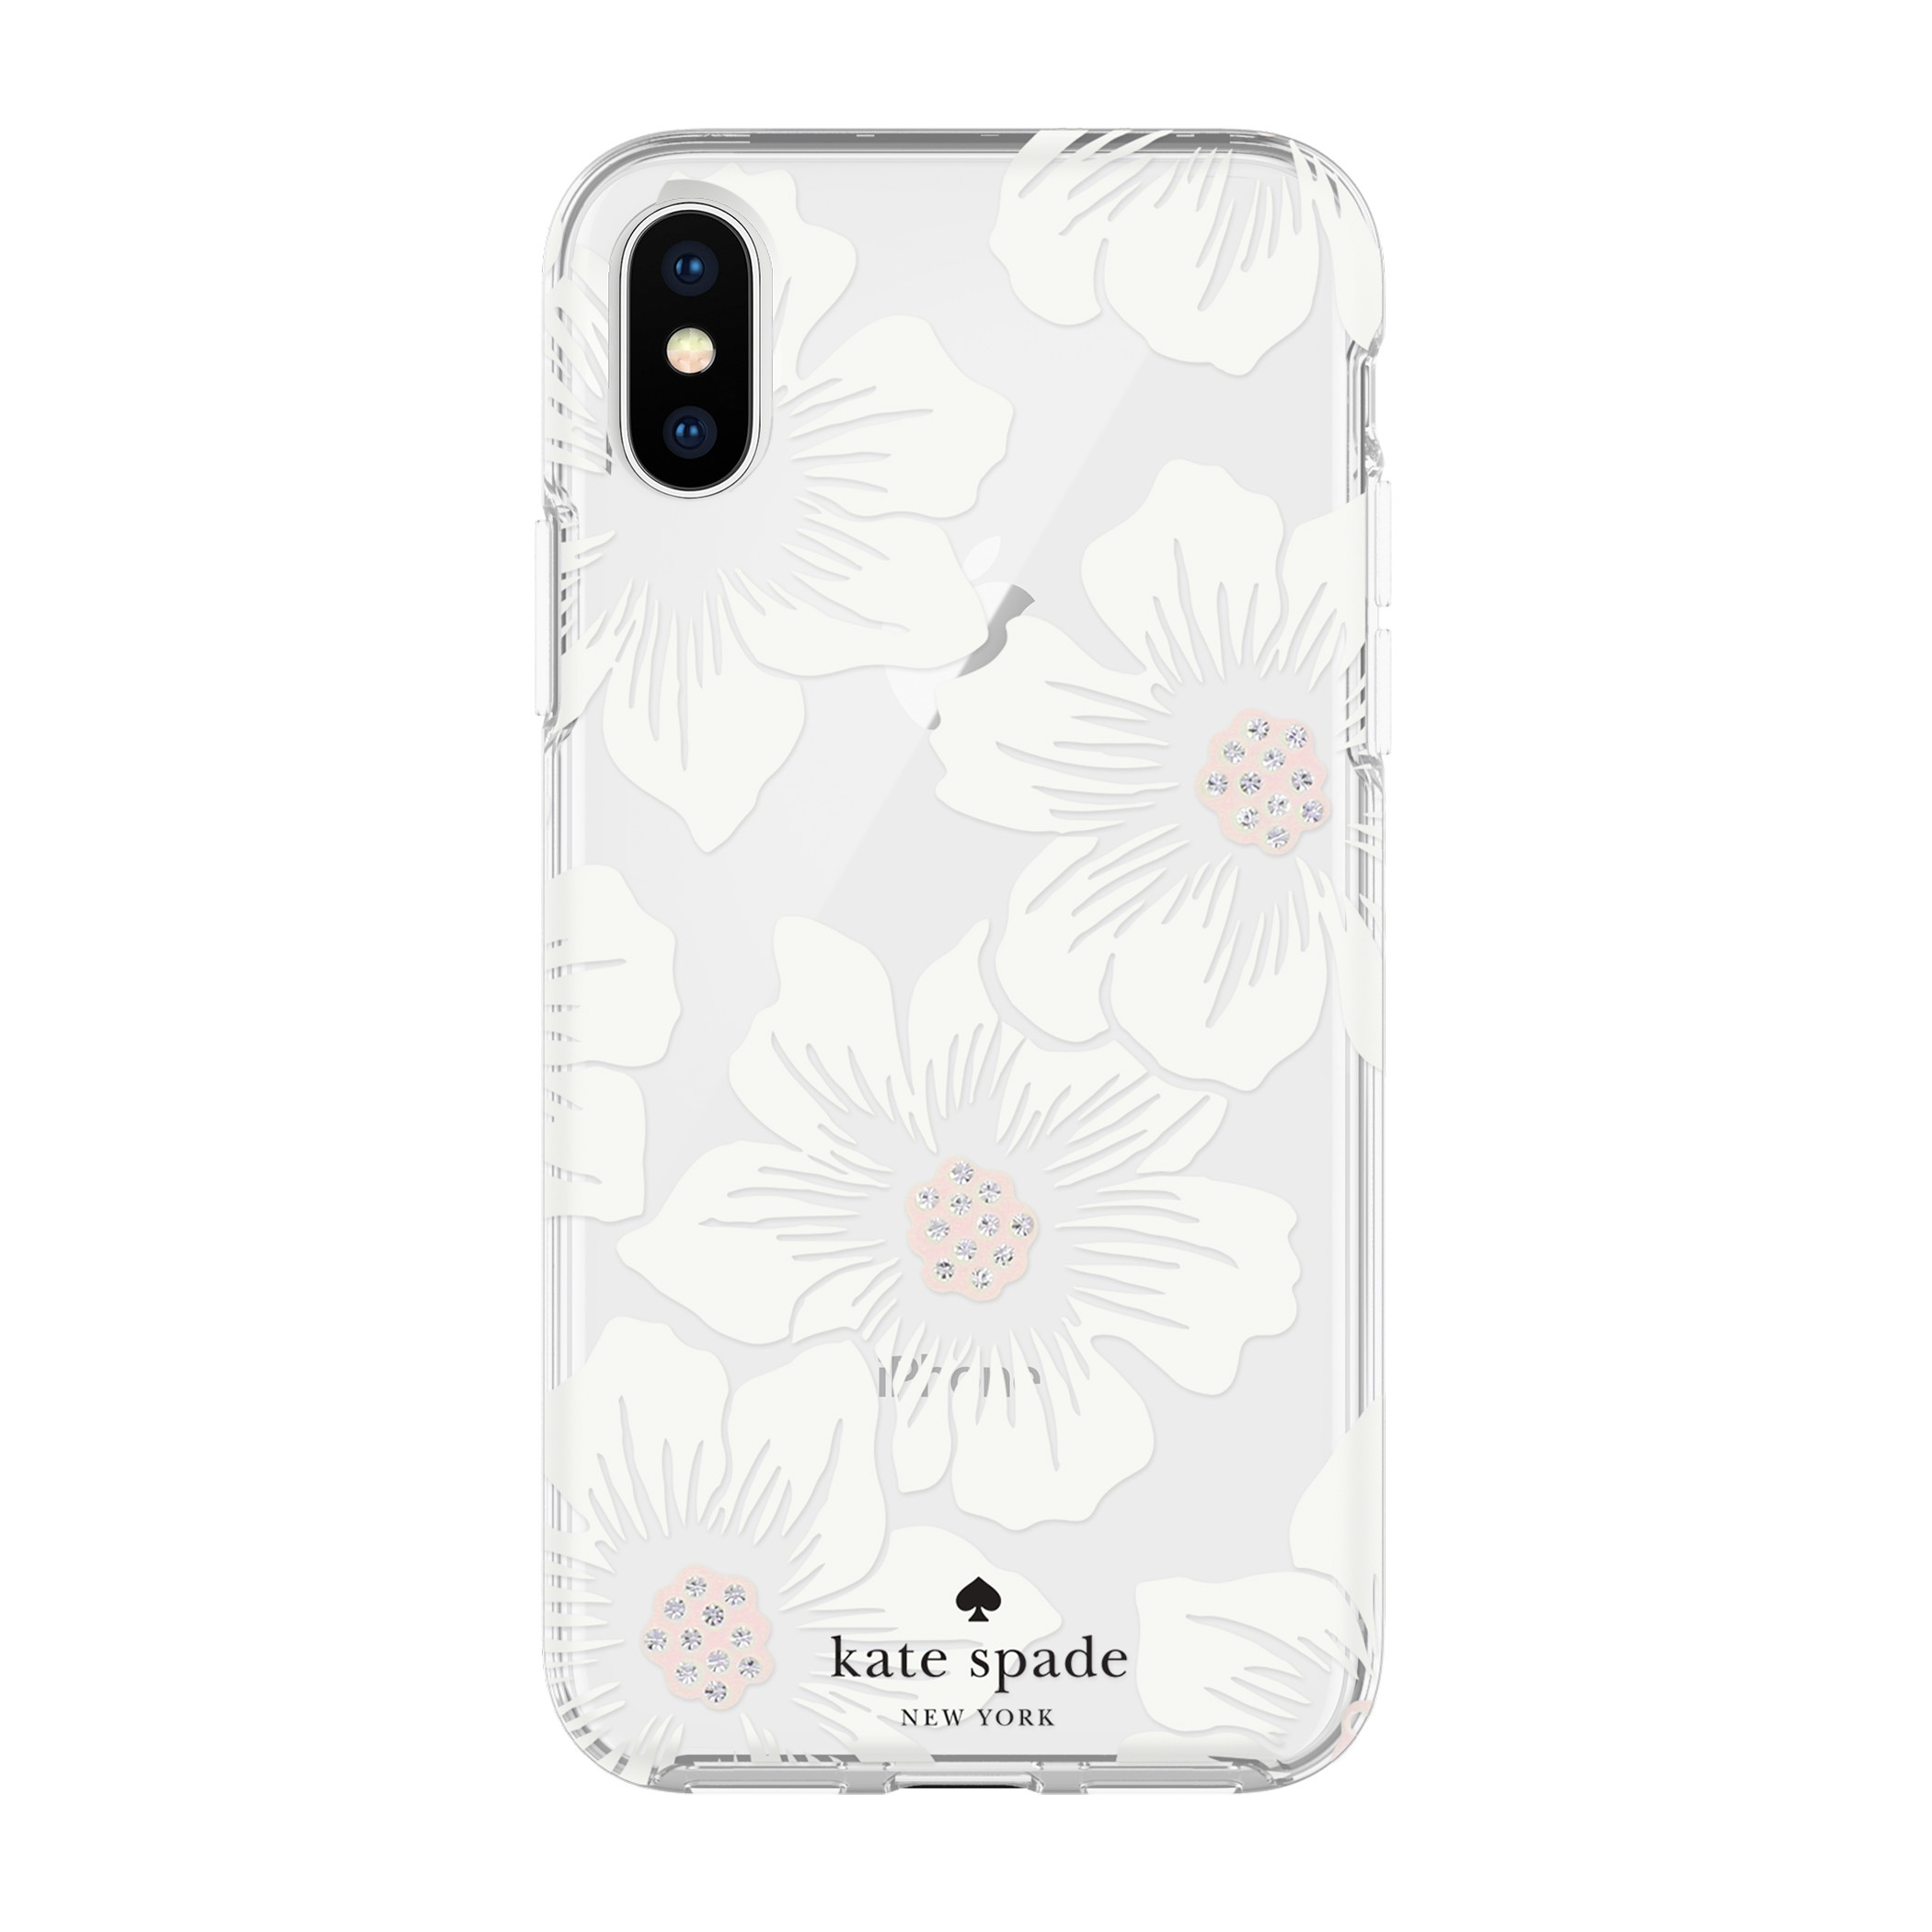 cce5791c7 Kate Spade Flexible Hardshell Case for iPhone X/XS - Hollyhock Floral Clear/ Cream with Stones